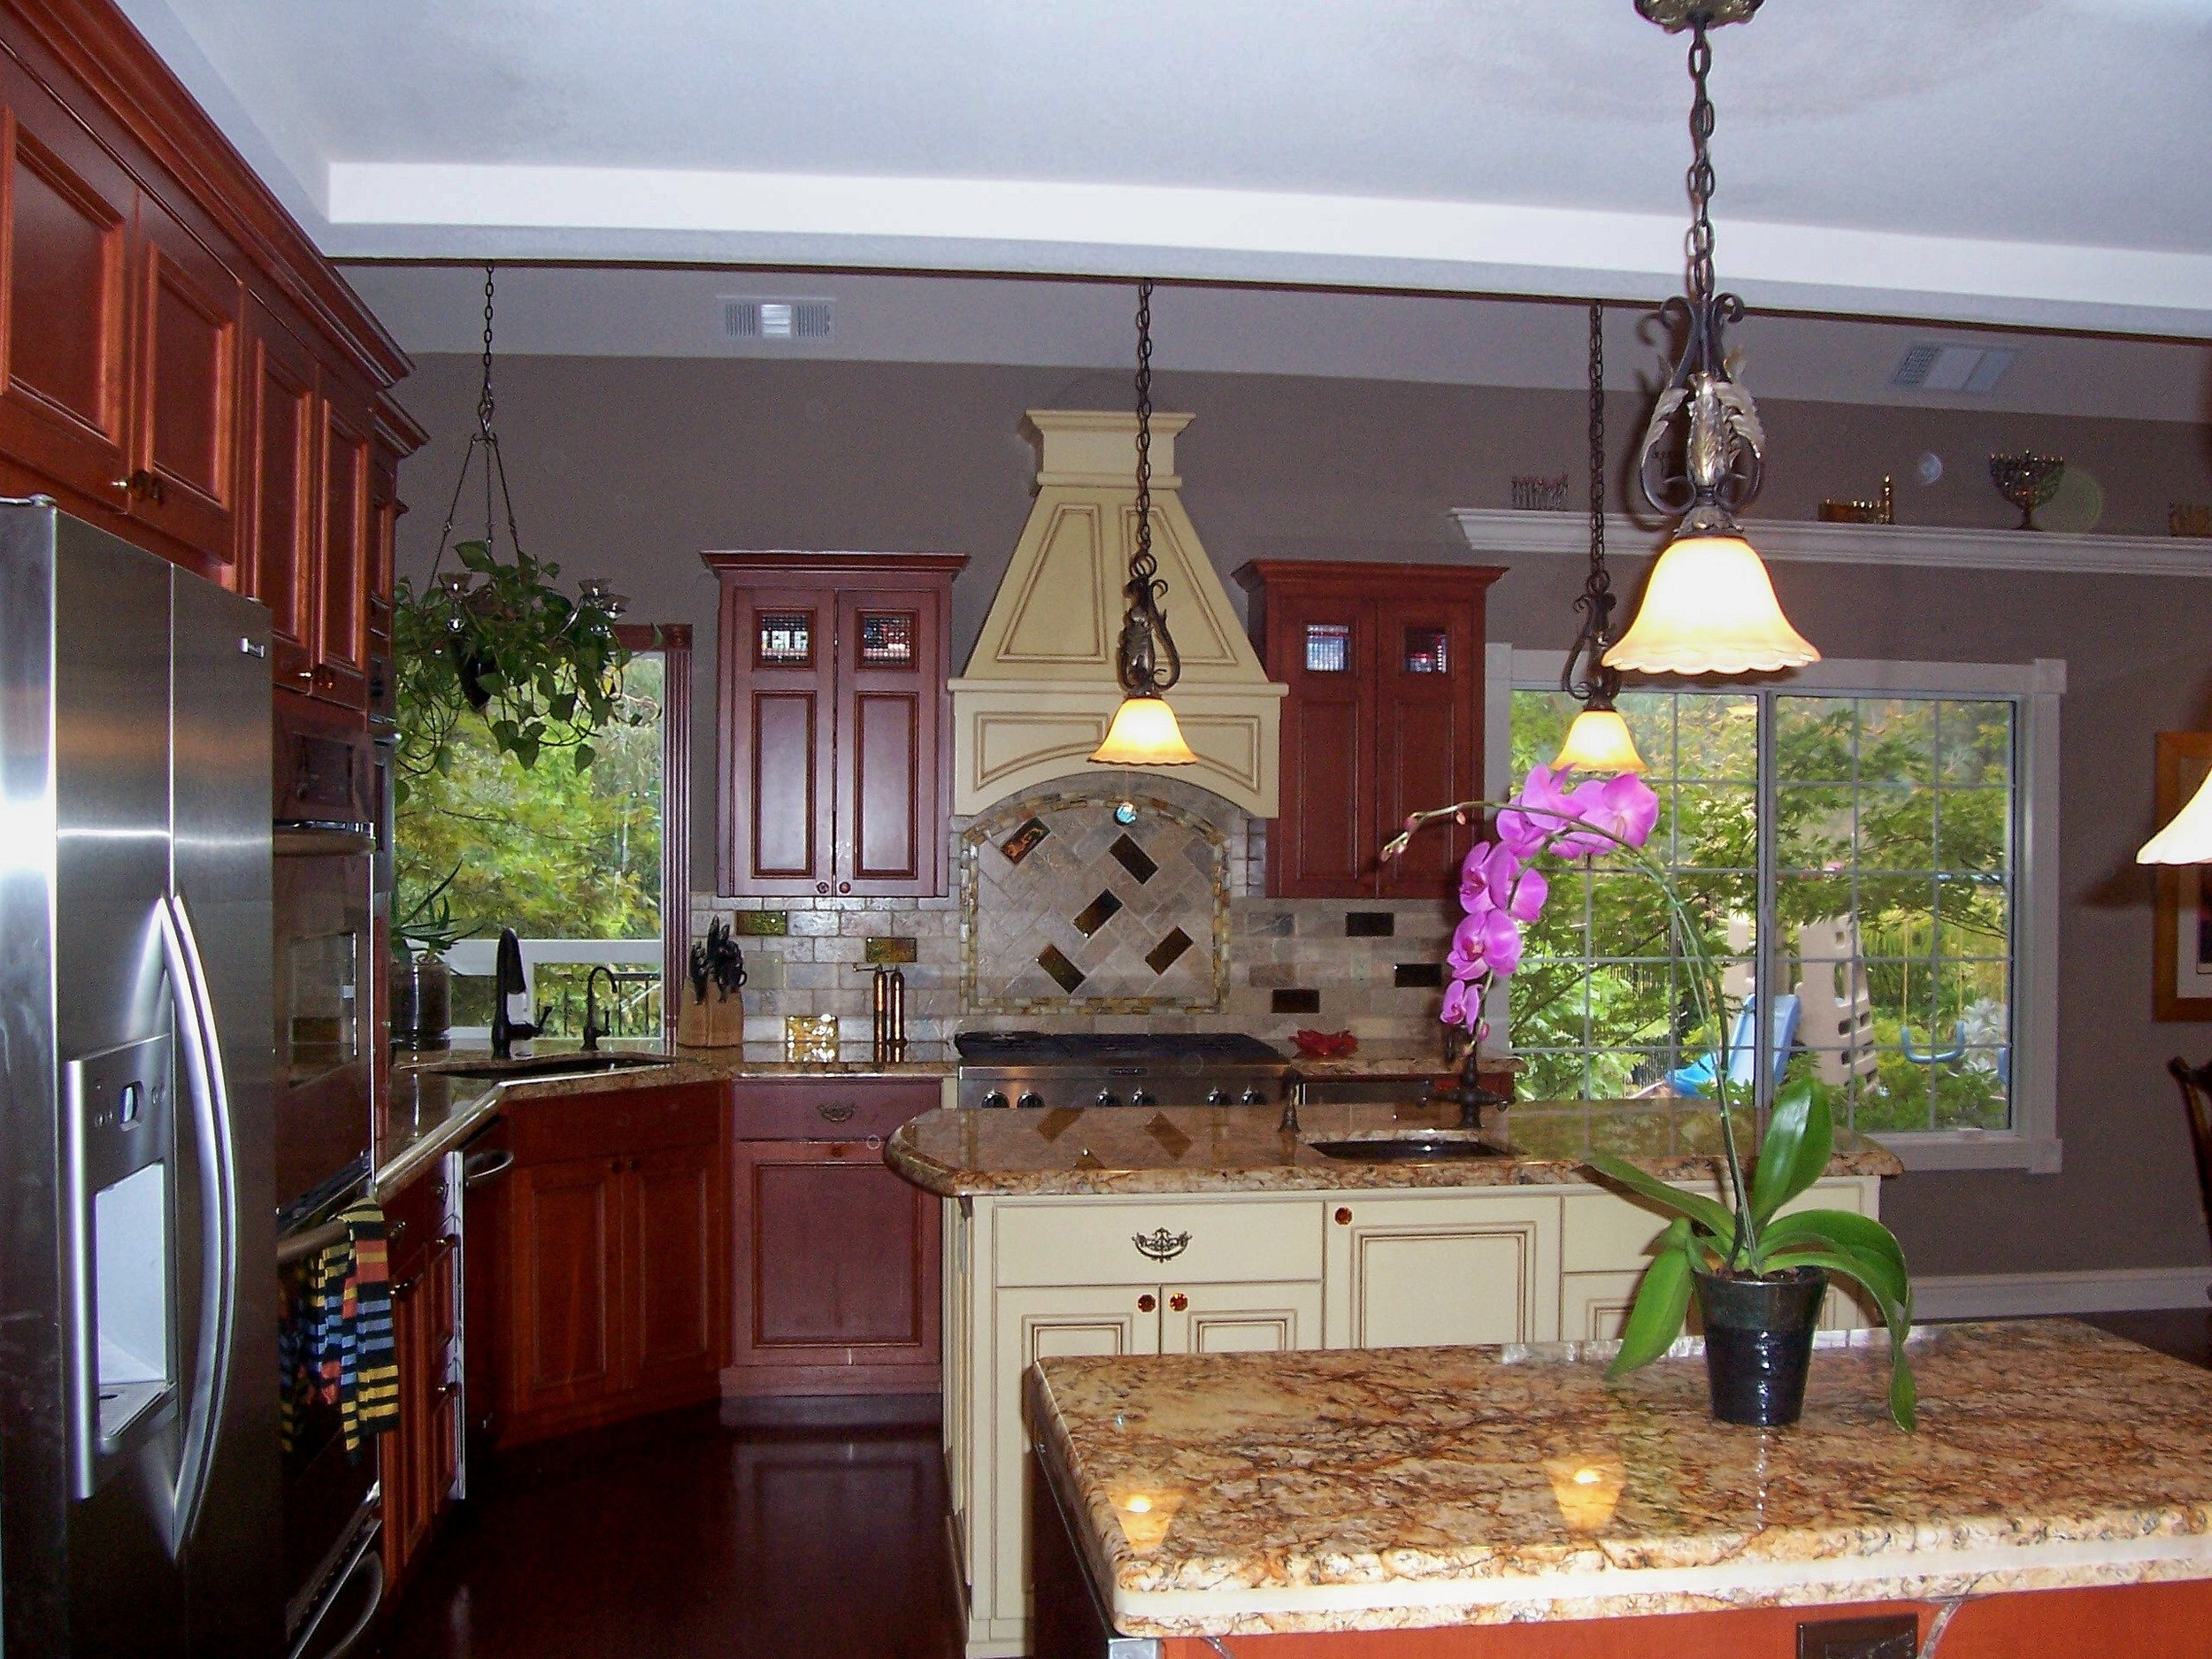 shasta-wood-products-residential-03.jpg